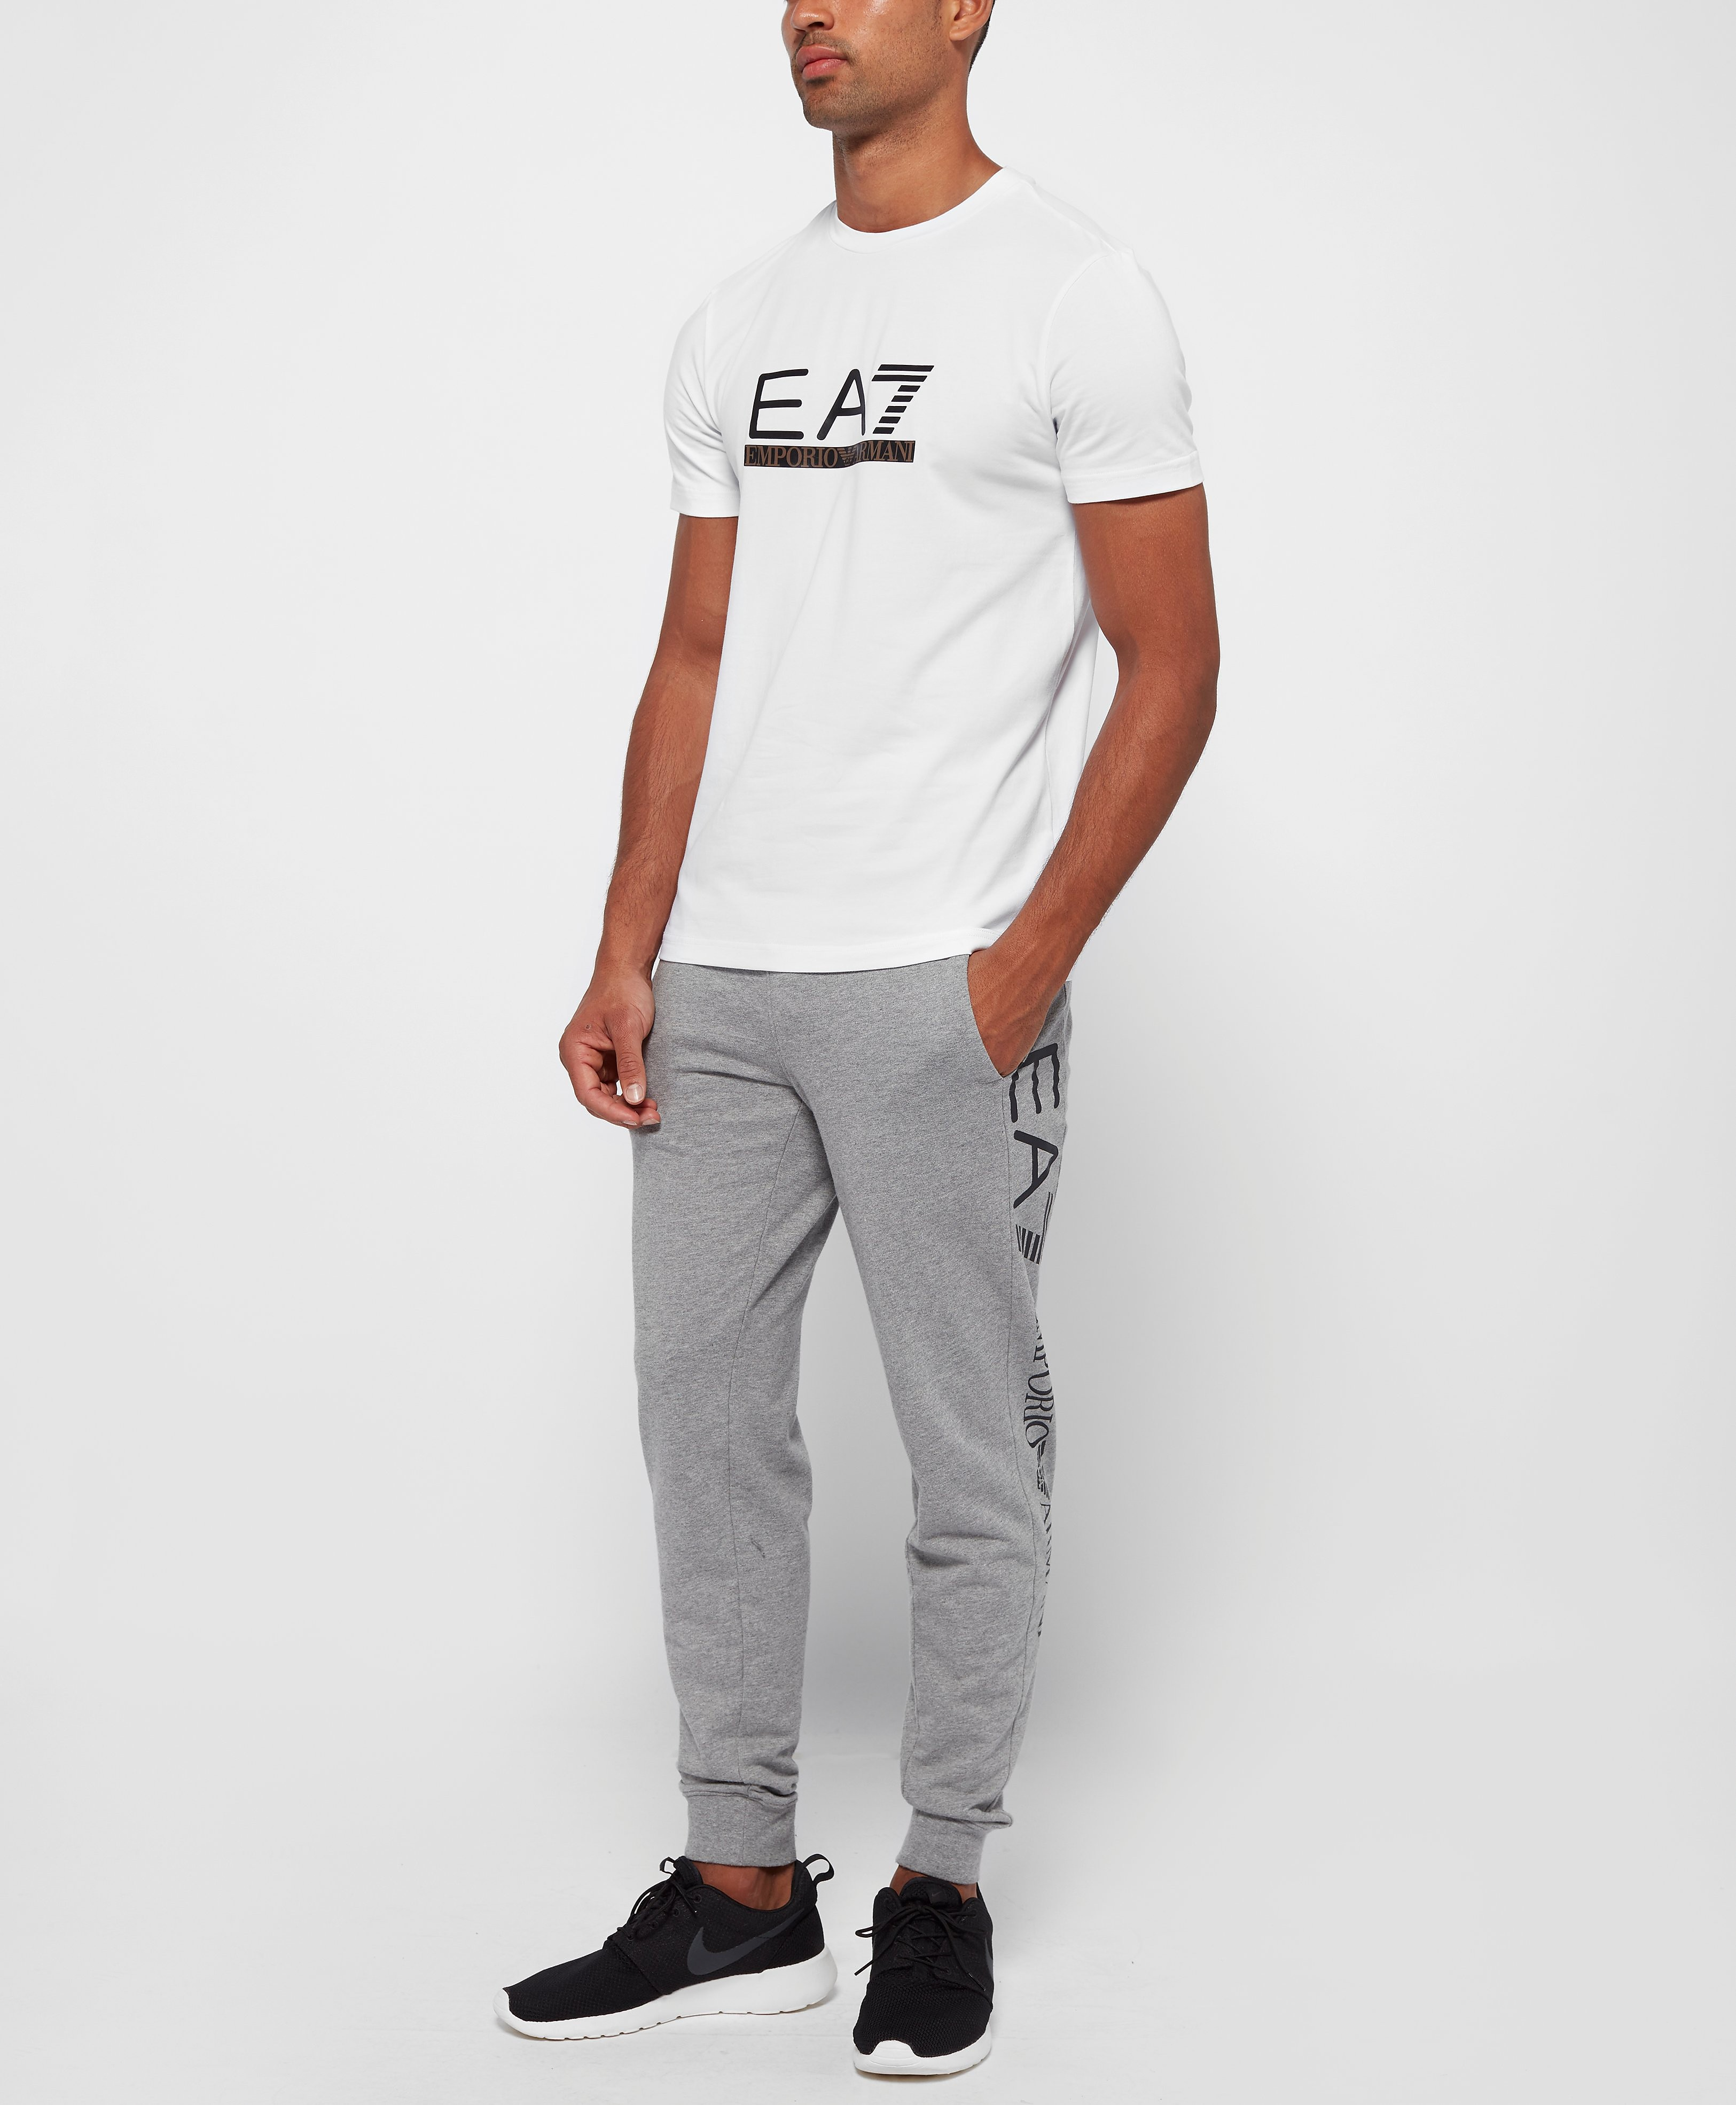 Emporio Armani EA7 Leather Logo T-Shirt - Exclusive